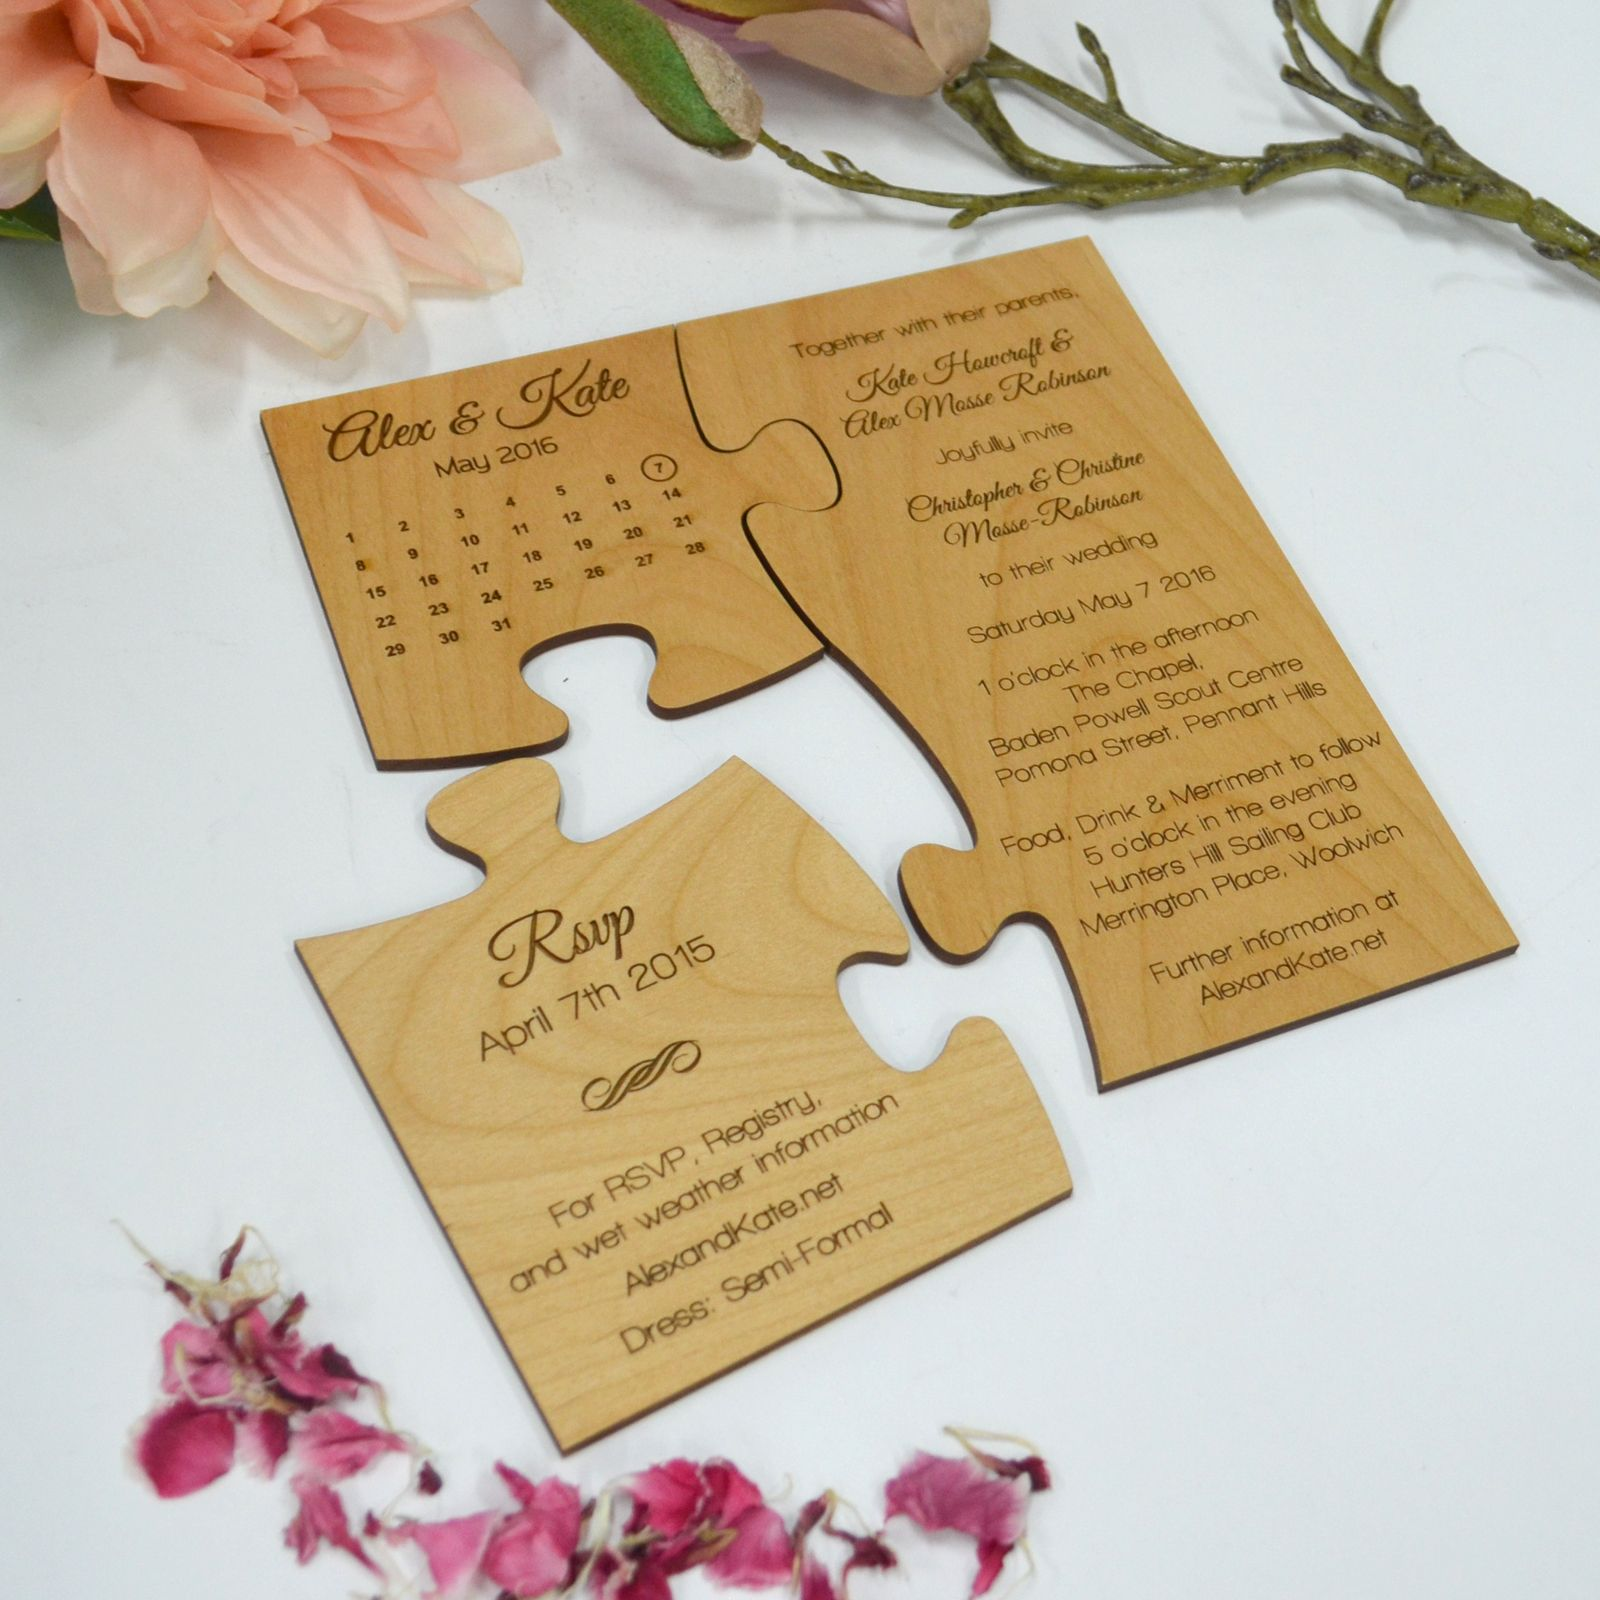 Wedding Invitation Ideas Pinterest: LIMITED EDITION Engraved Wooden Puzzle Wedding Invitation